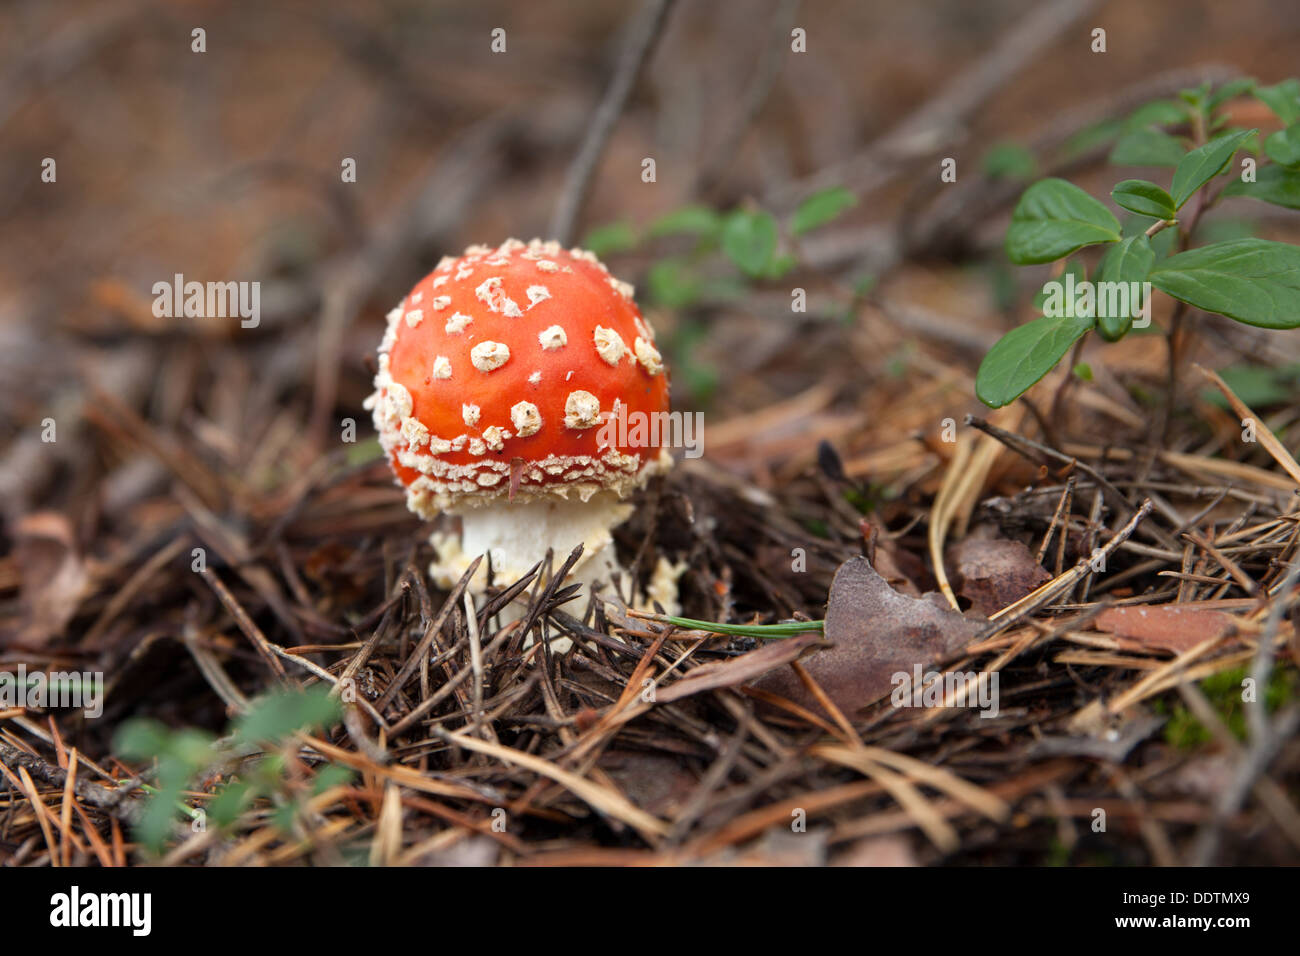 Small red toadstool rising from the groung - Stock Image